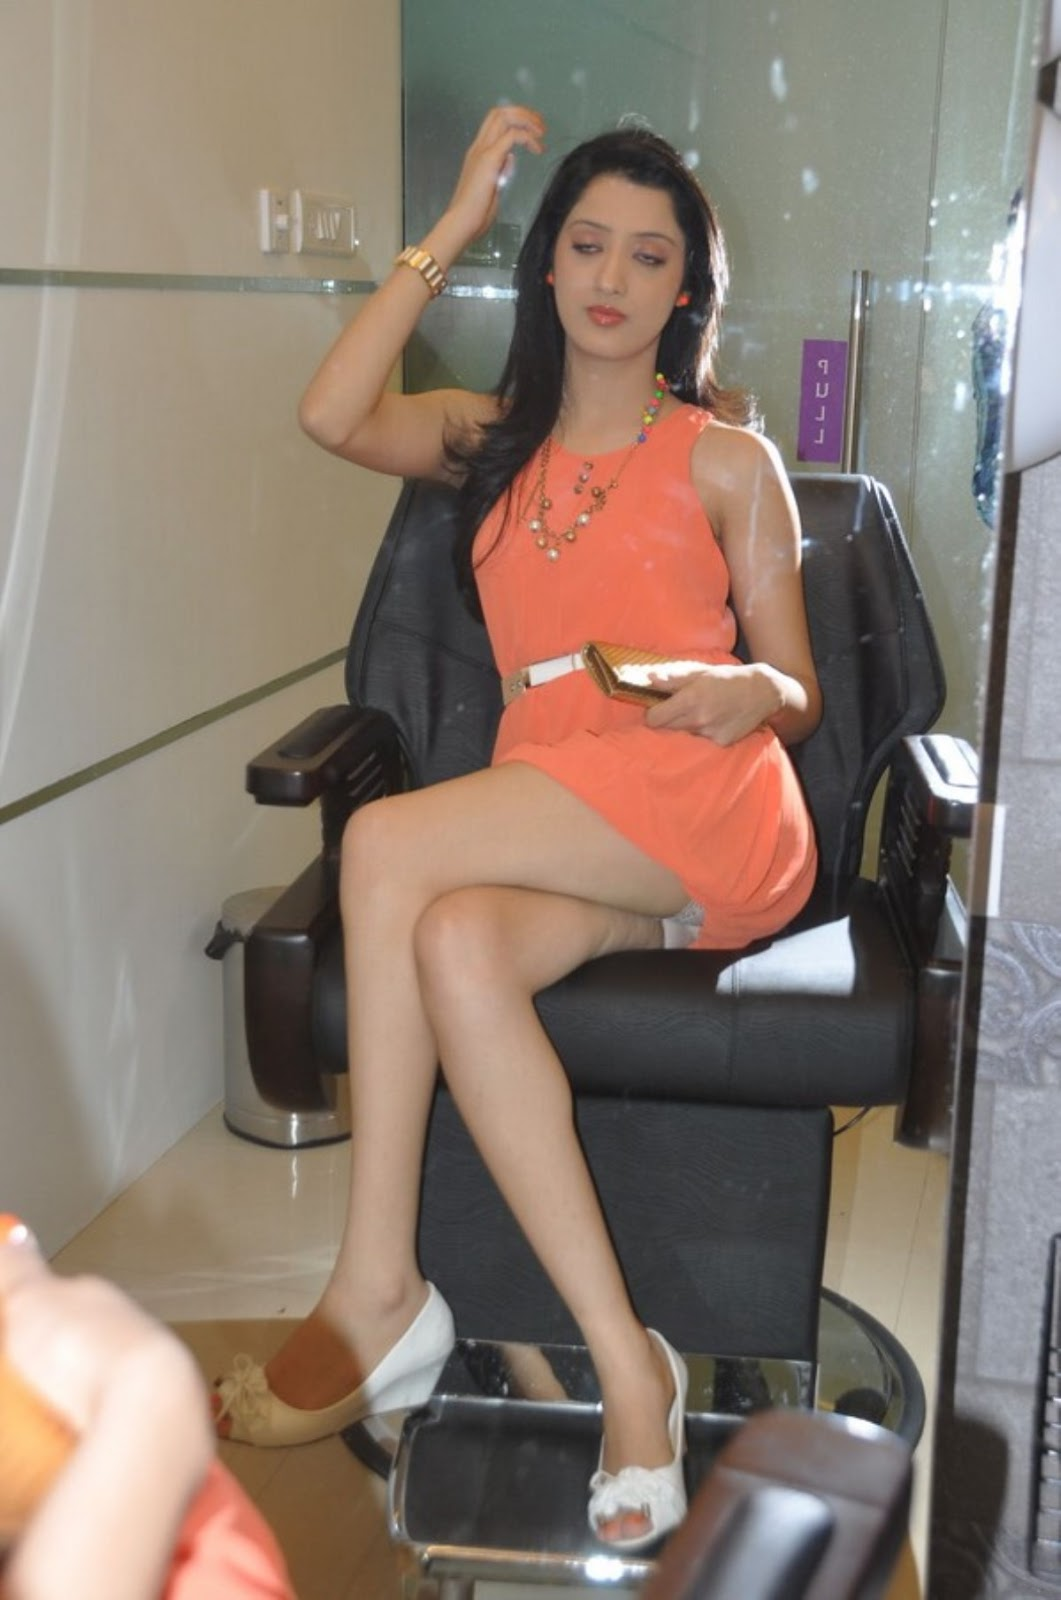 Salon Erotic Richa Panai Hot Panty Show Photos At Naturals Salon Launch